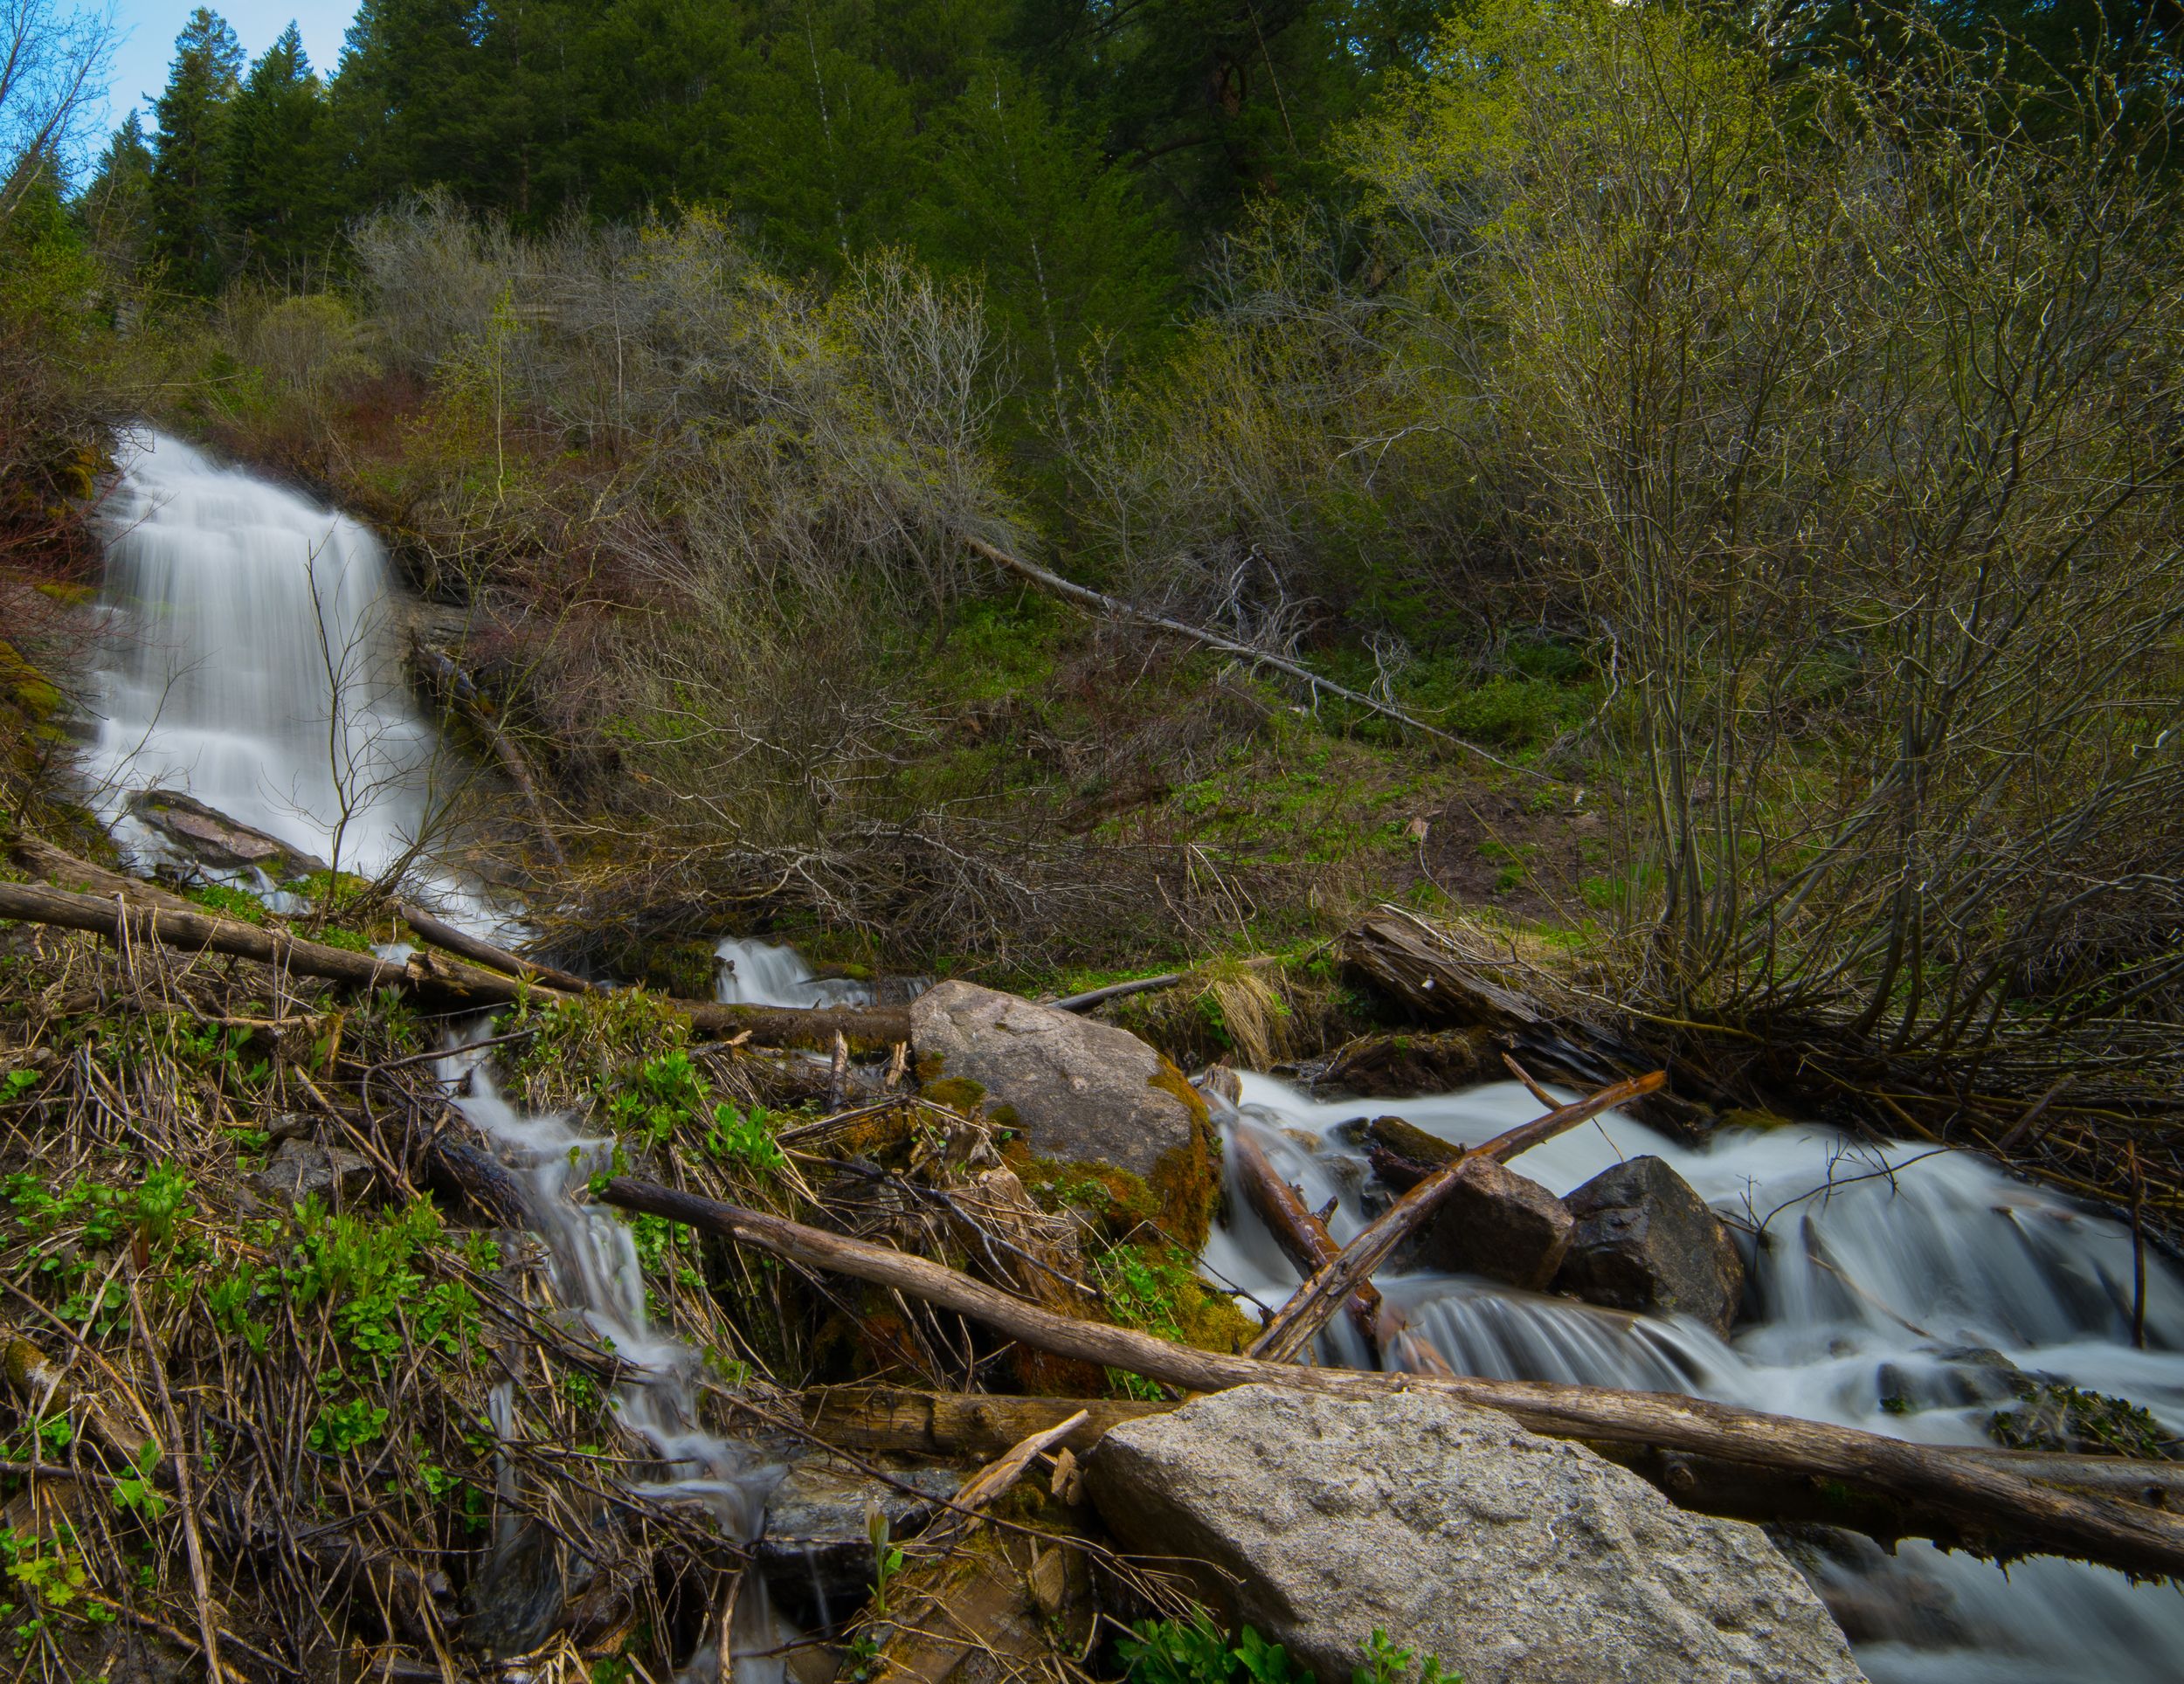 THE FIRST VIEW OF EAST VAIL WATERFALLS // IMAGE BY FRANKIEBOY PHOTOGRAPHY